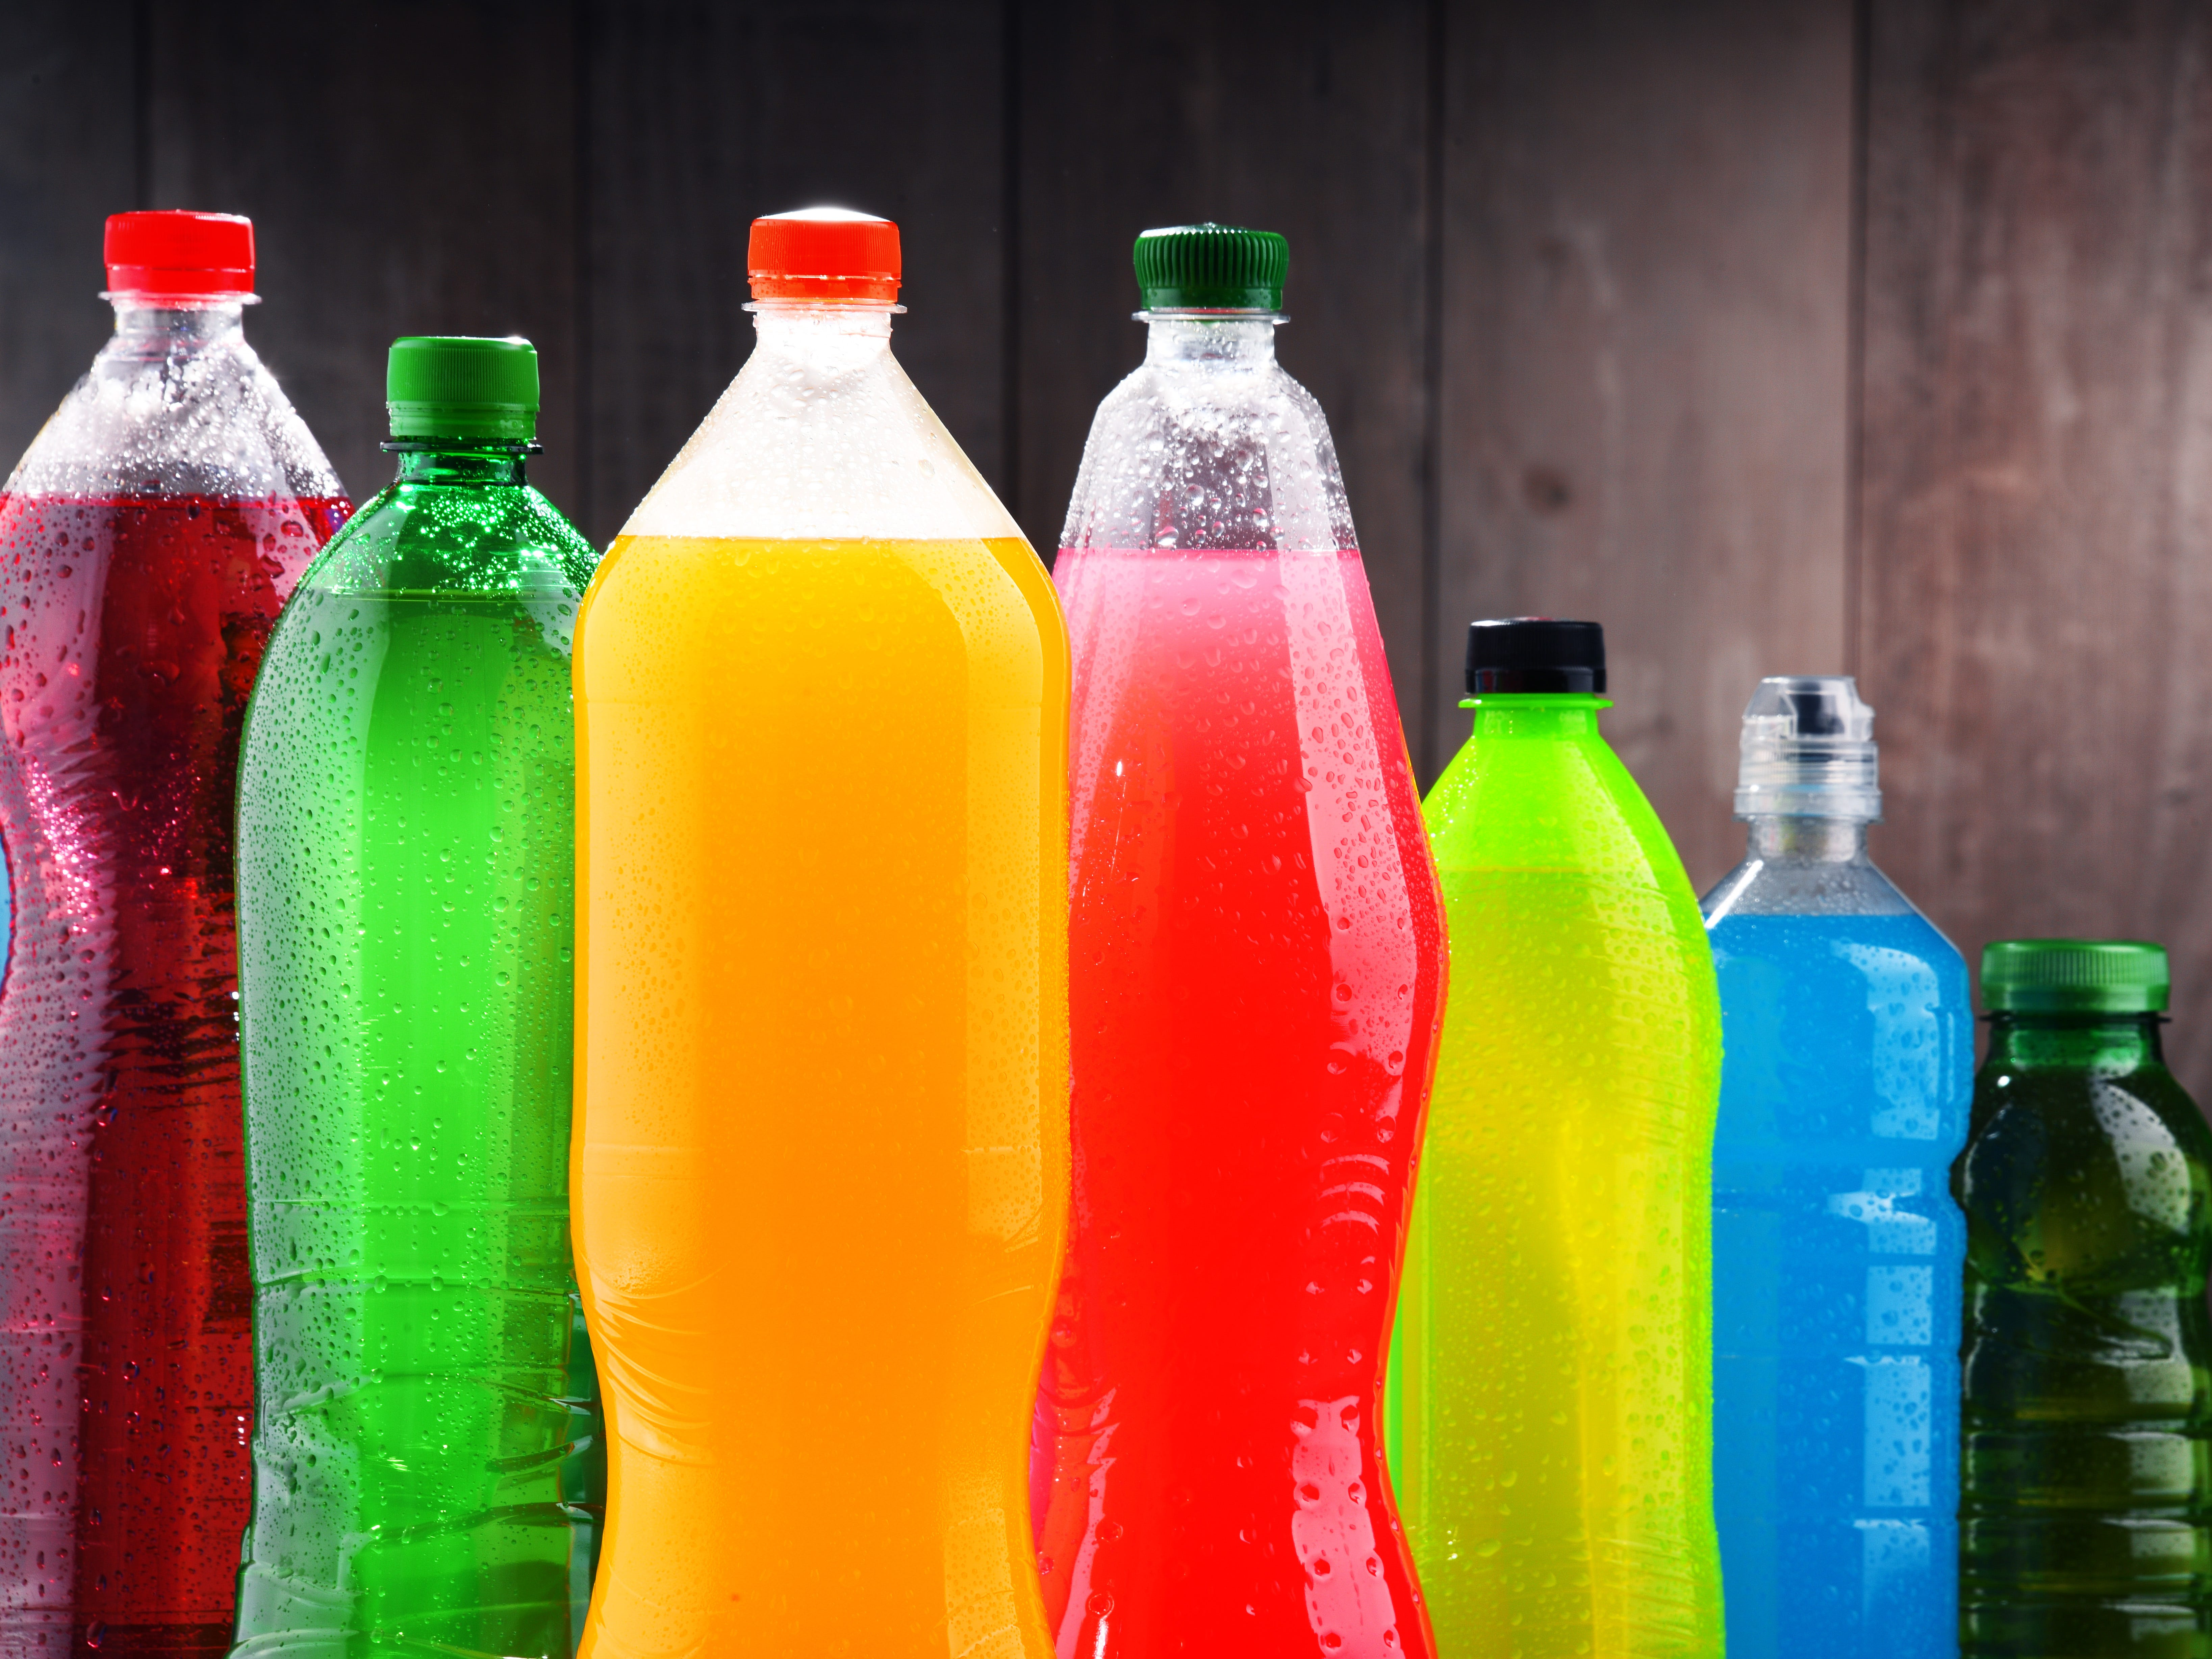 Sugary drinks linked to increased risk of death, study suggests